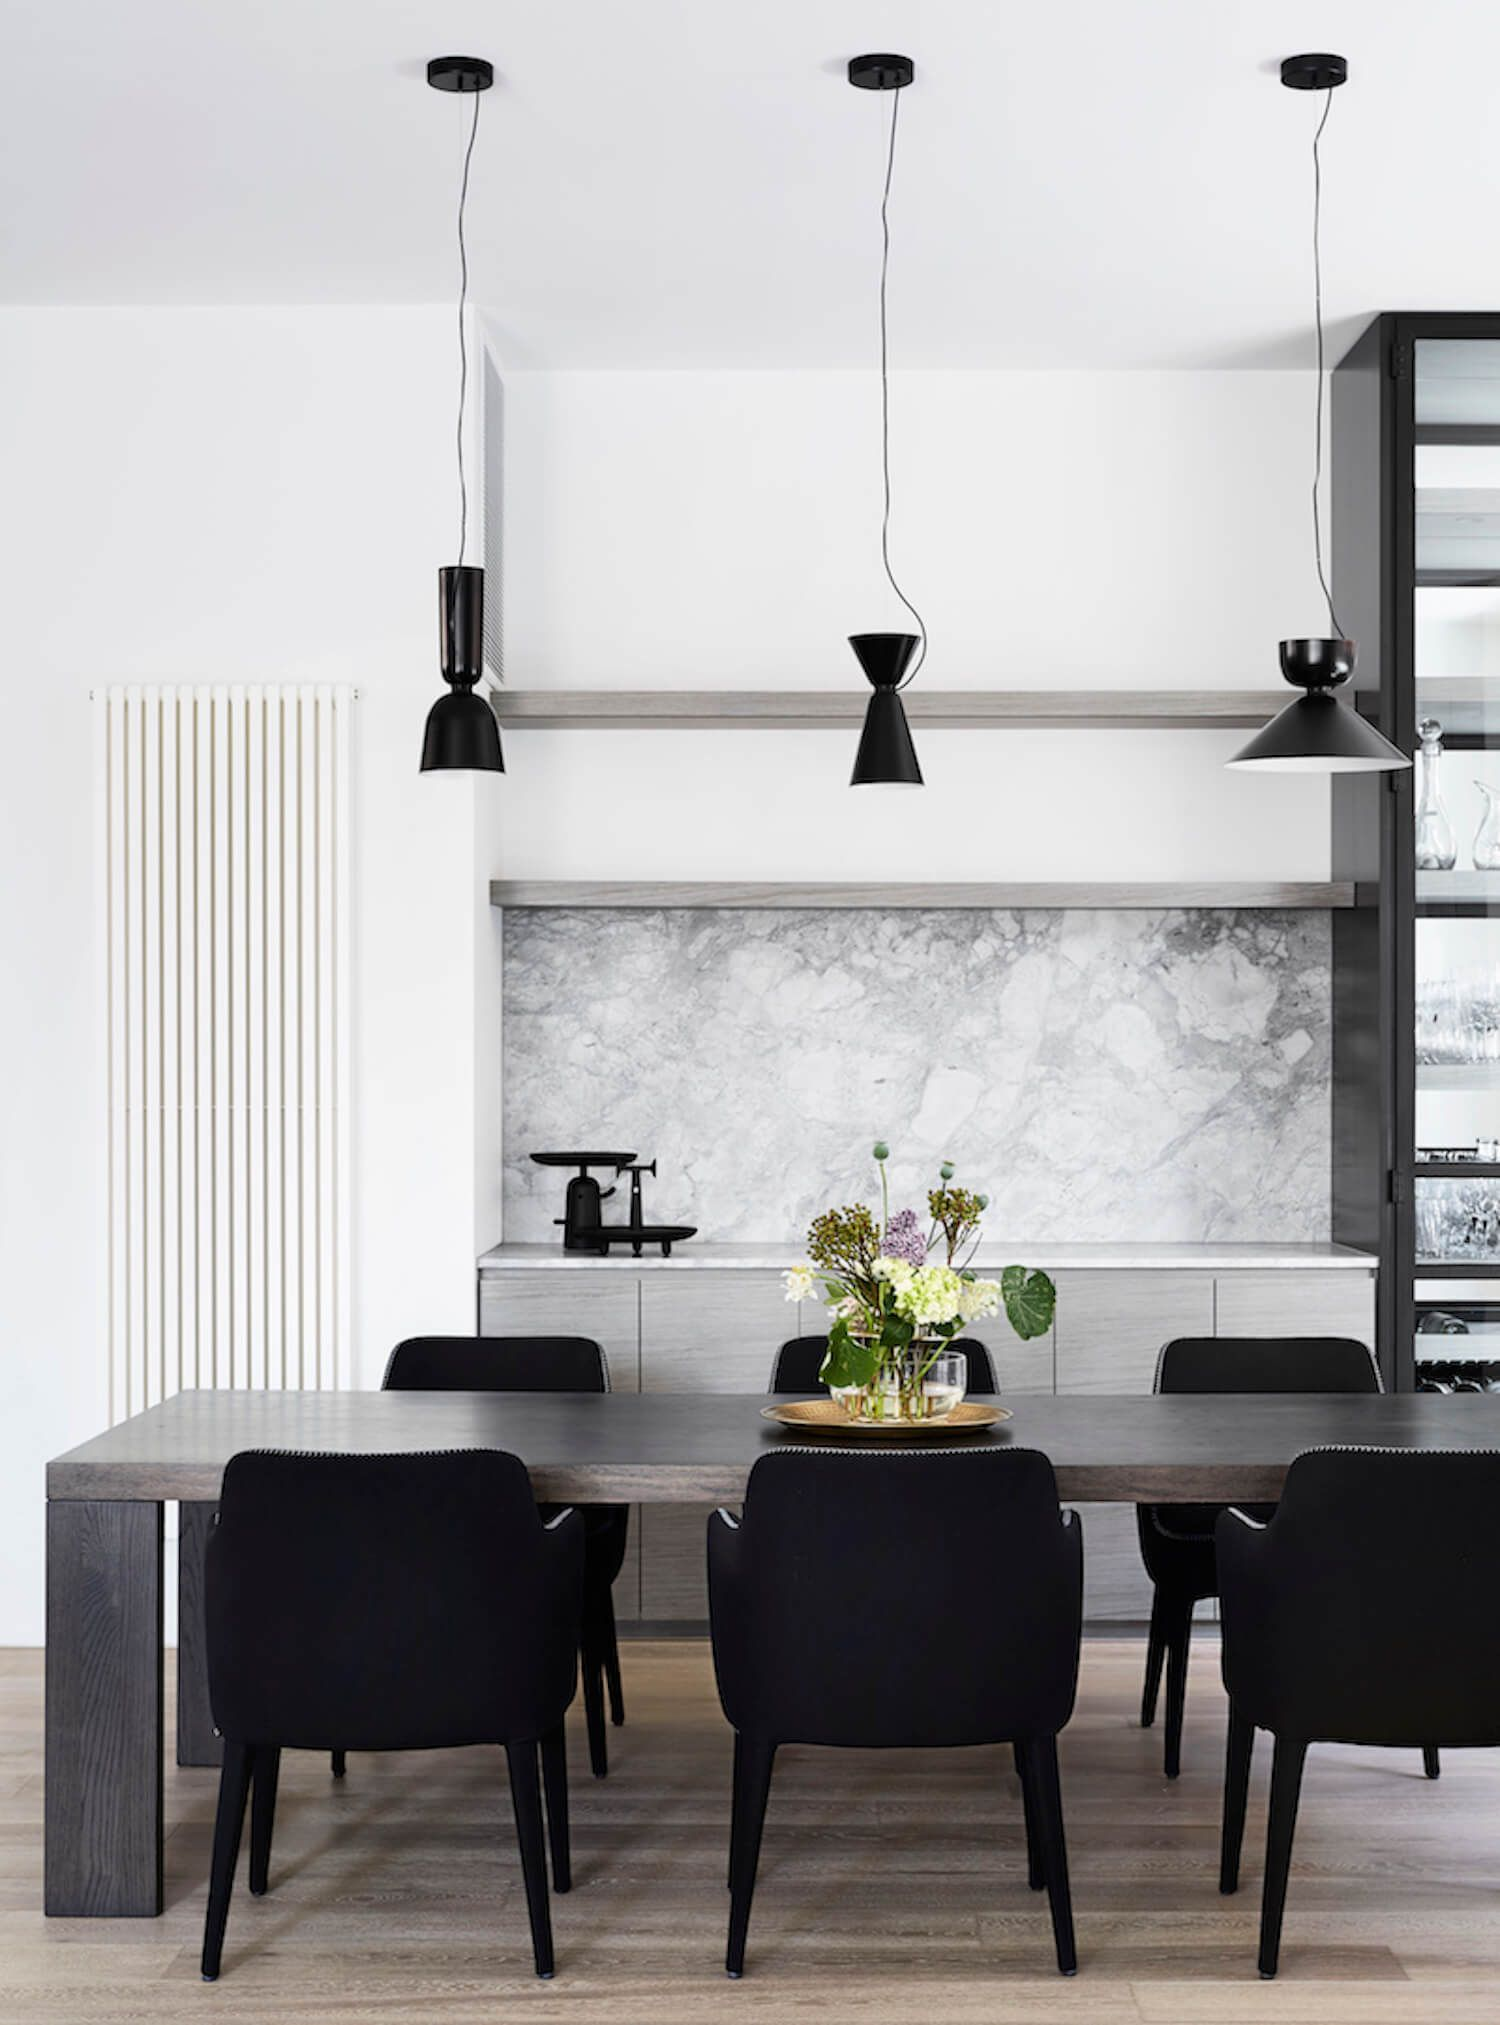 Monochrome Dining Room With Joinery Light Grey Marble Splashback Veneer Cabinets